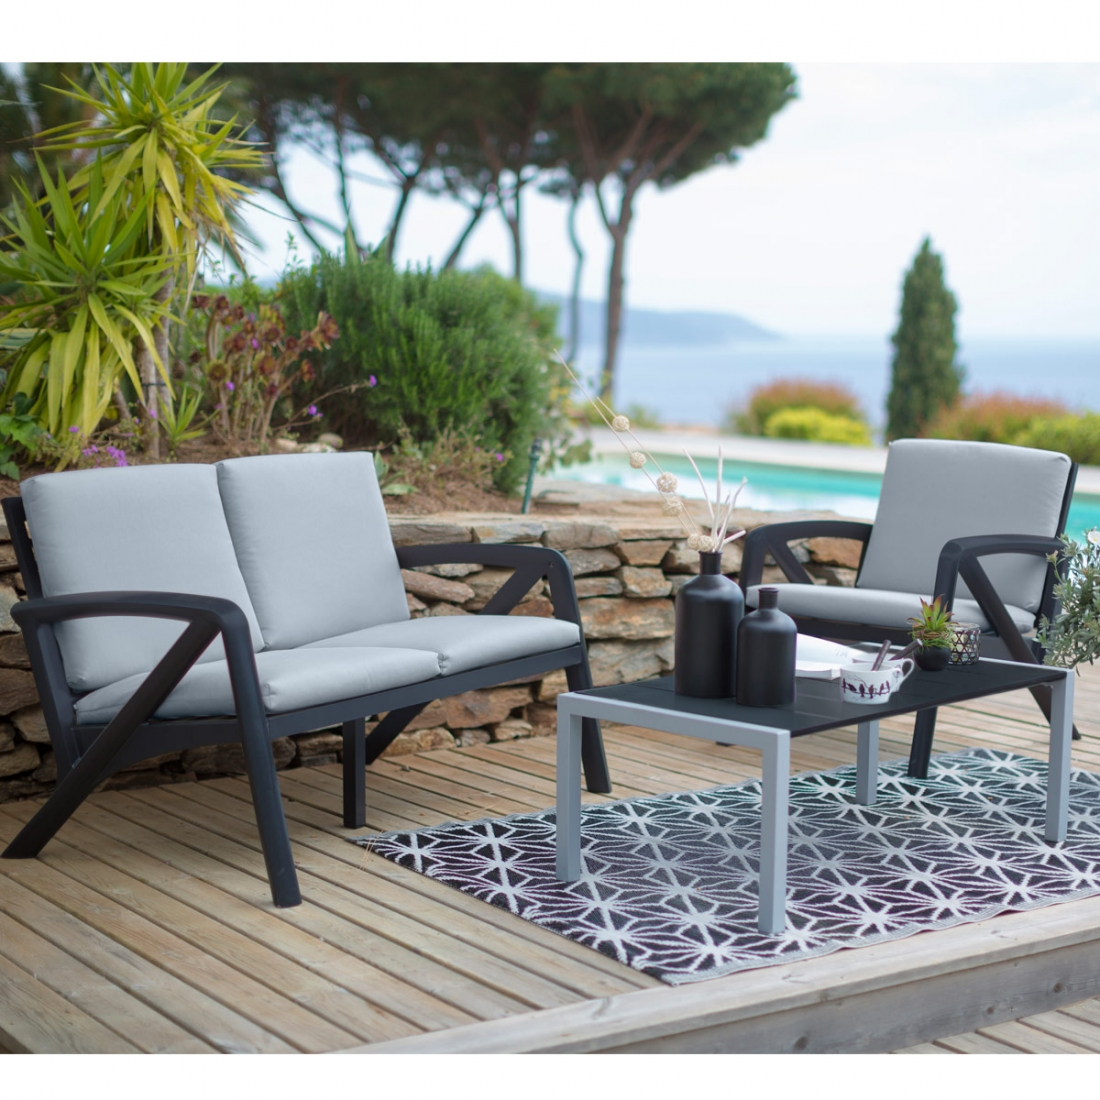 Salon de jardin lounge sunday barcelone design grosfillex for Salon de jardin truffaut